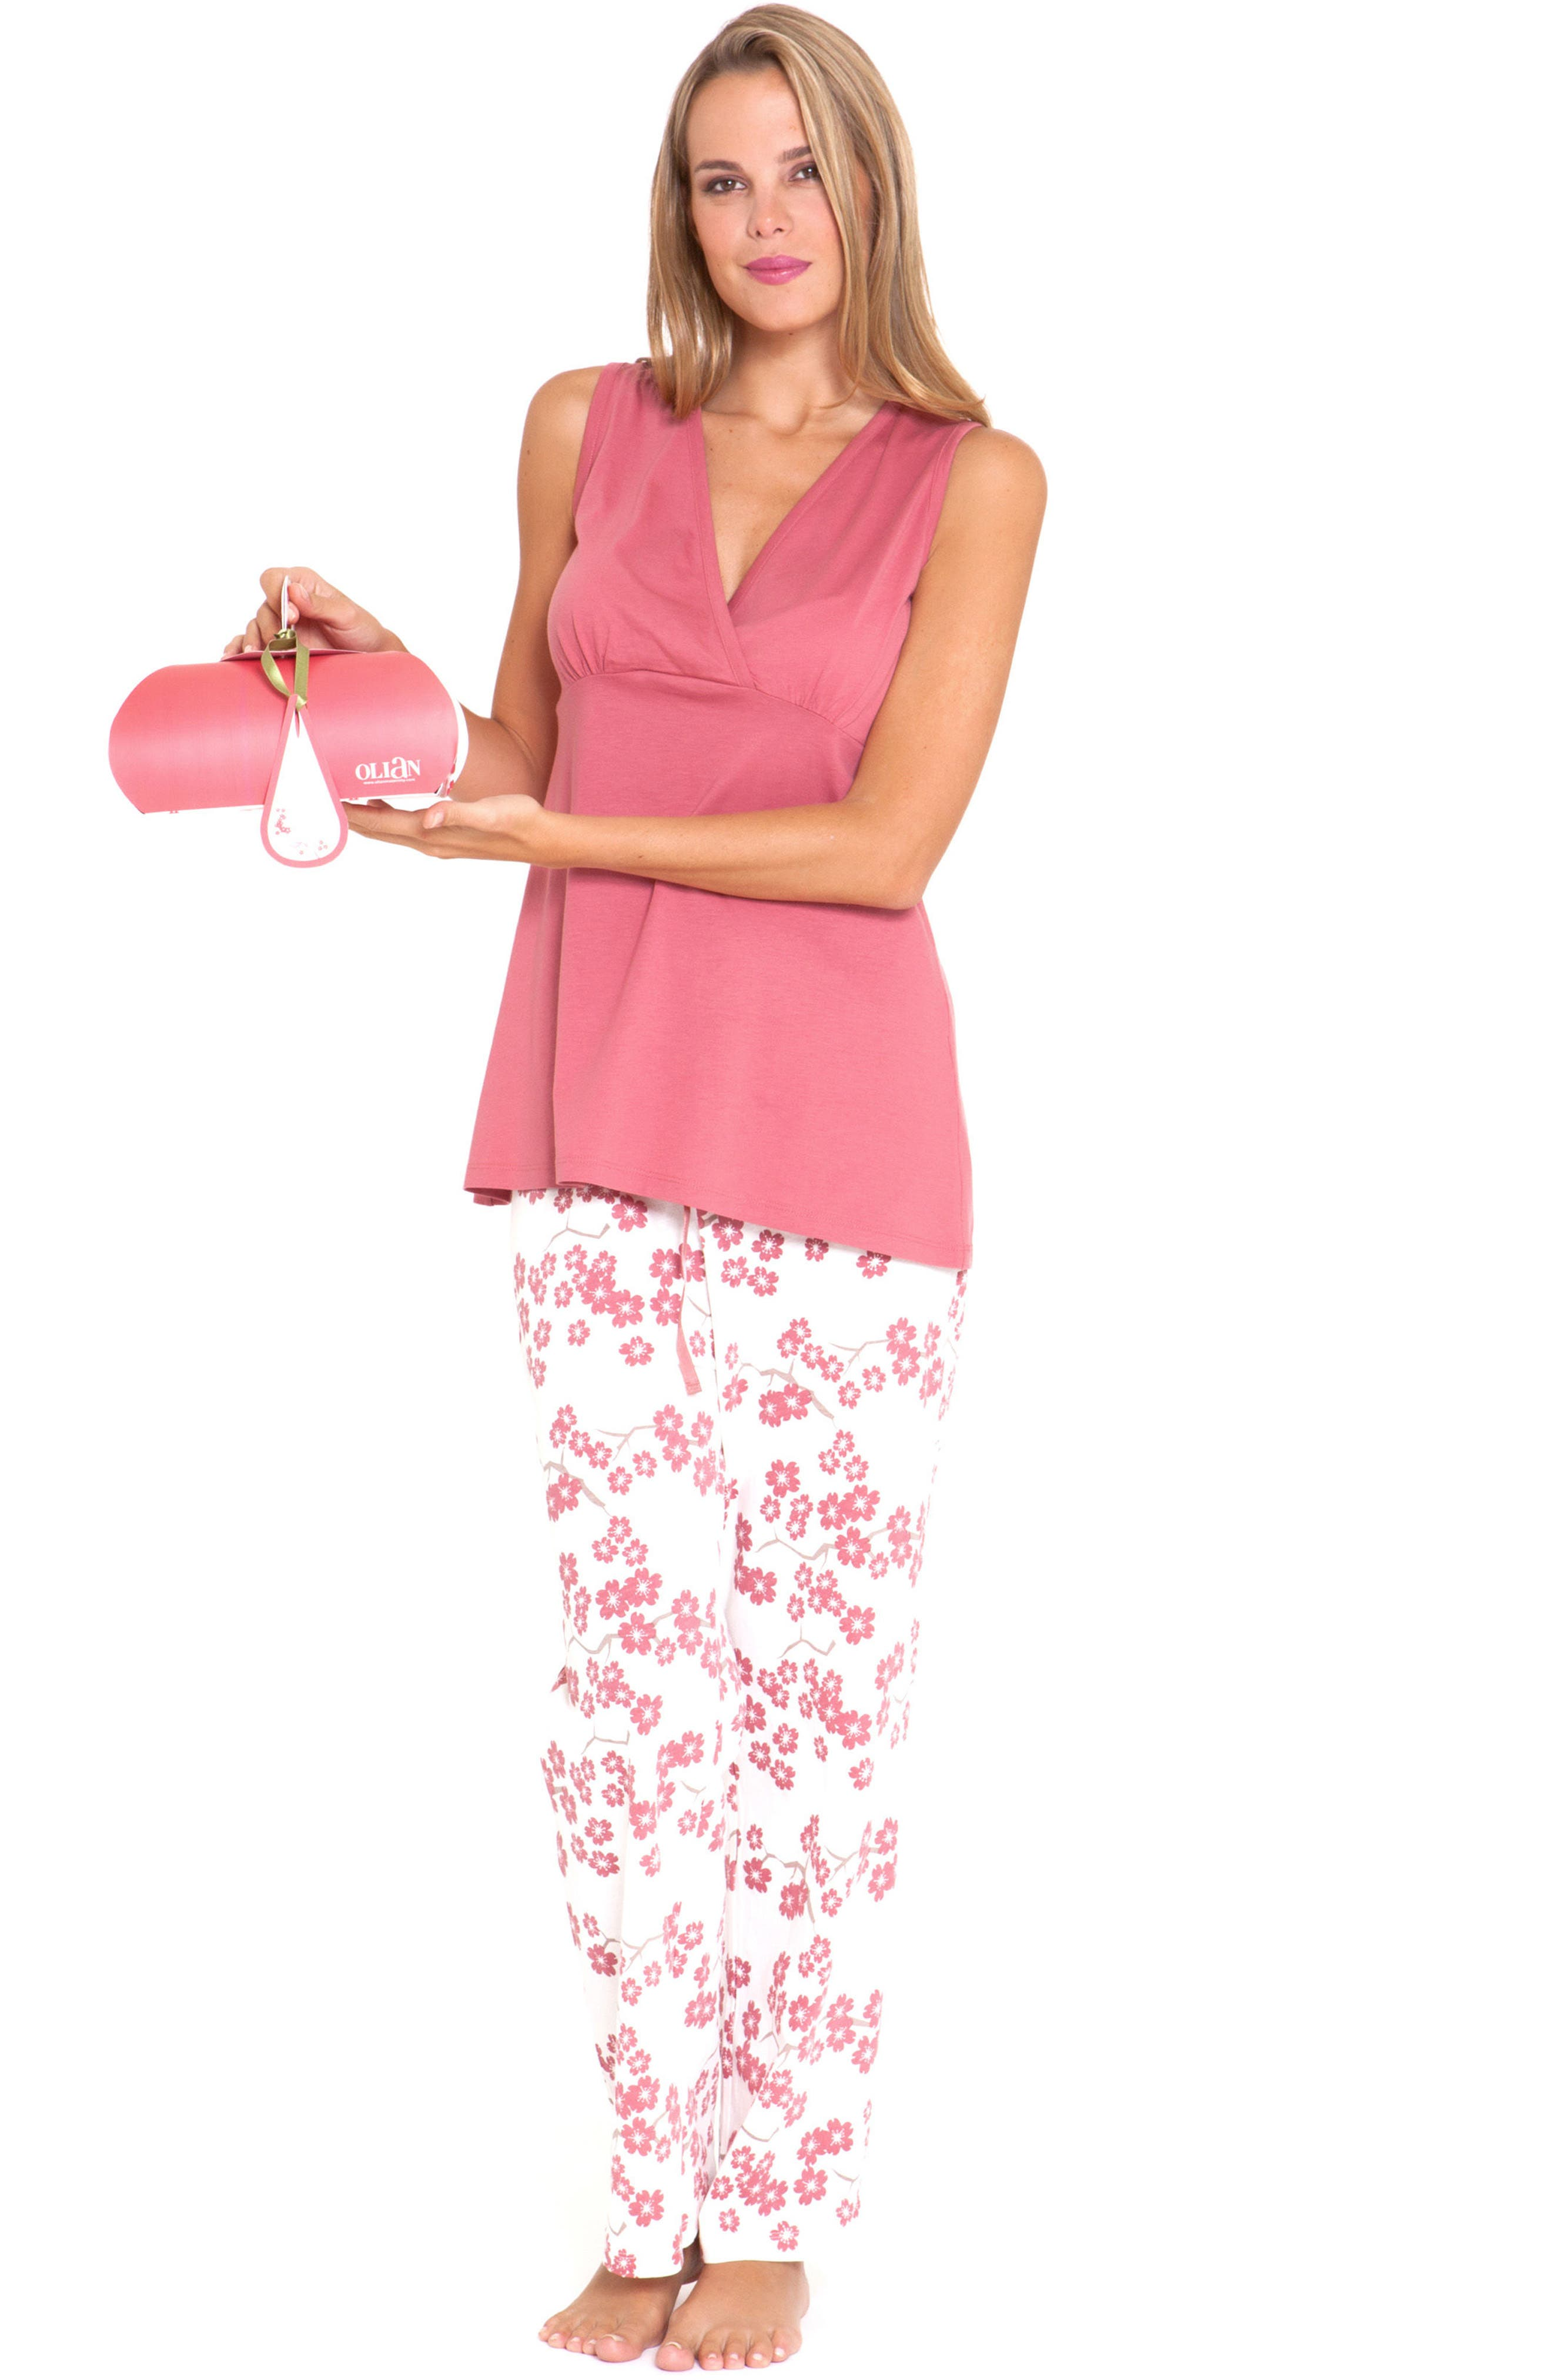 4-Piece Maternity Sleepwear Gift Set,                             Alternate thumbnail 3, color,                             664